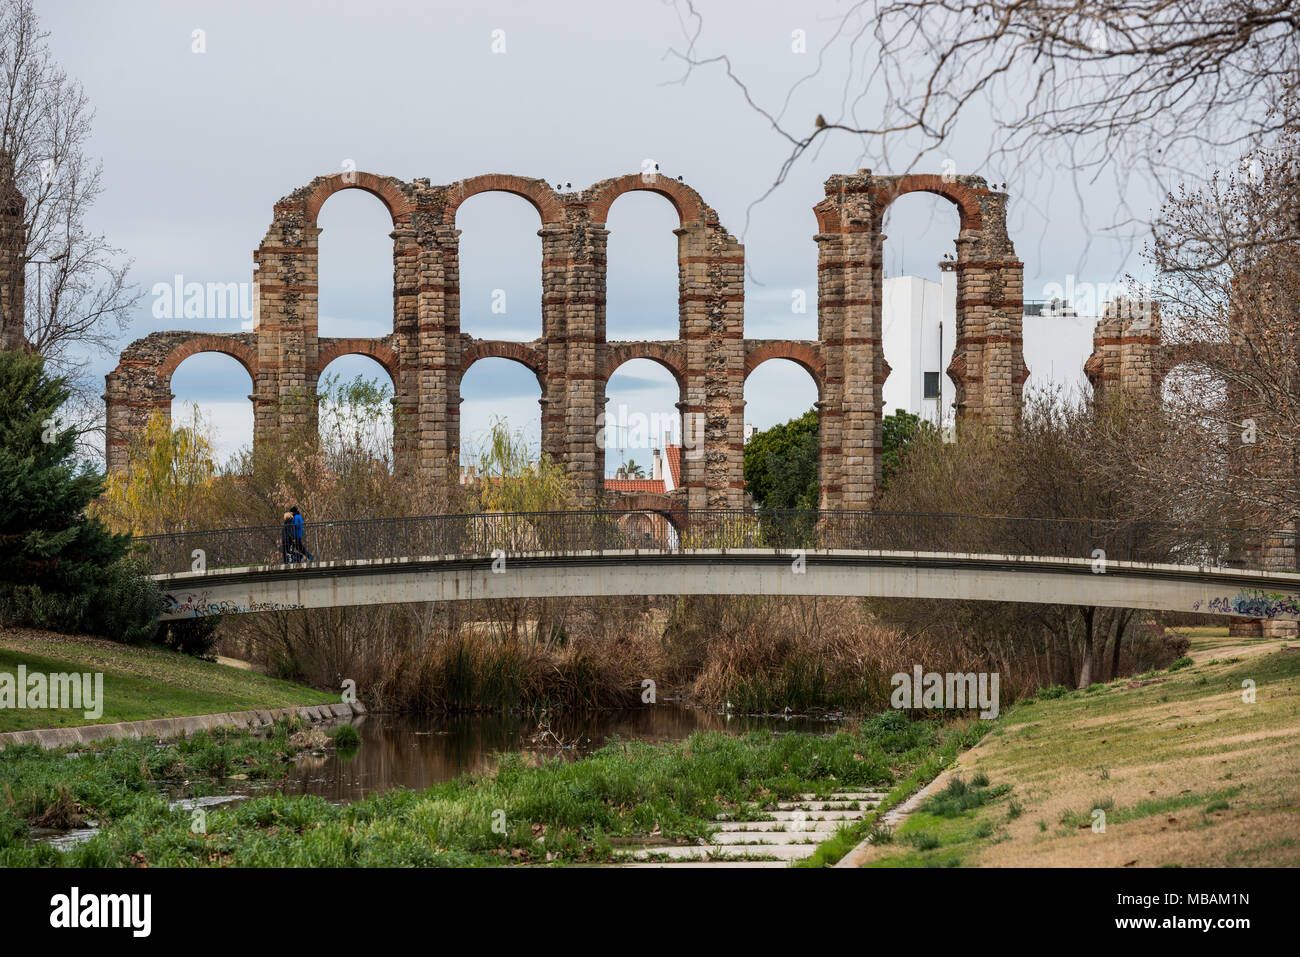 The aqueduct of miracles in the city of Mérida, Extremadura, Spain. Stock Photo